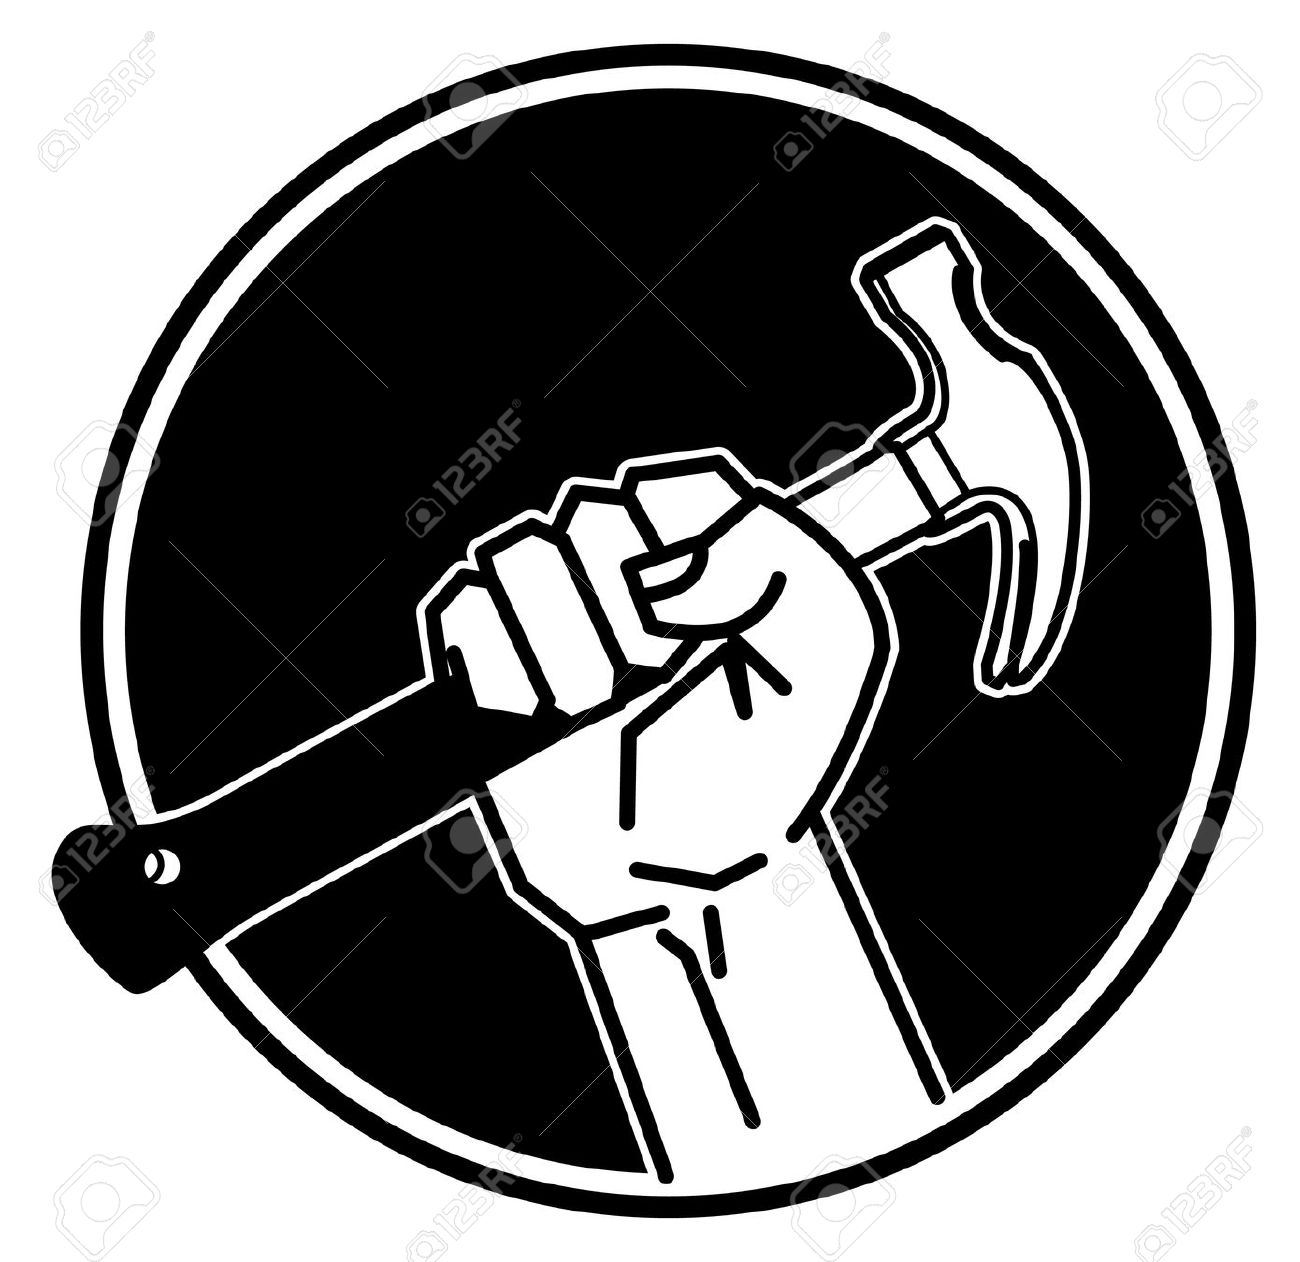 555 Hand Holding Hammer Stock Vector Illustration And Royalty Free. - Arm And Hammer Vector PNG